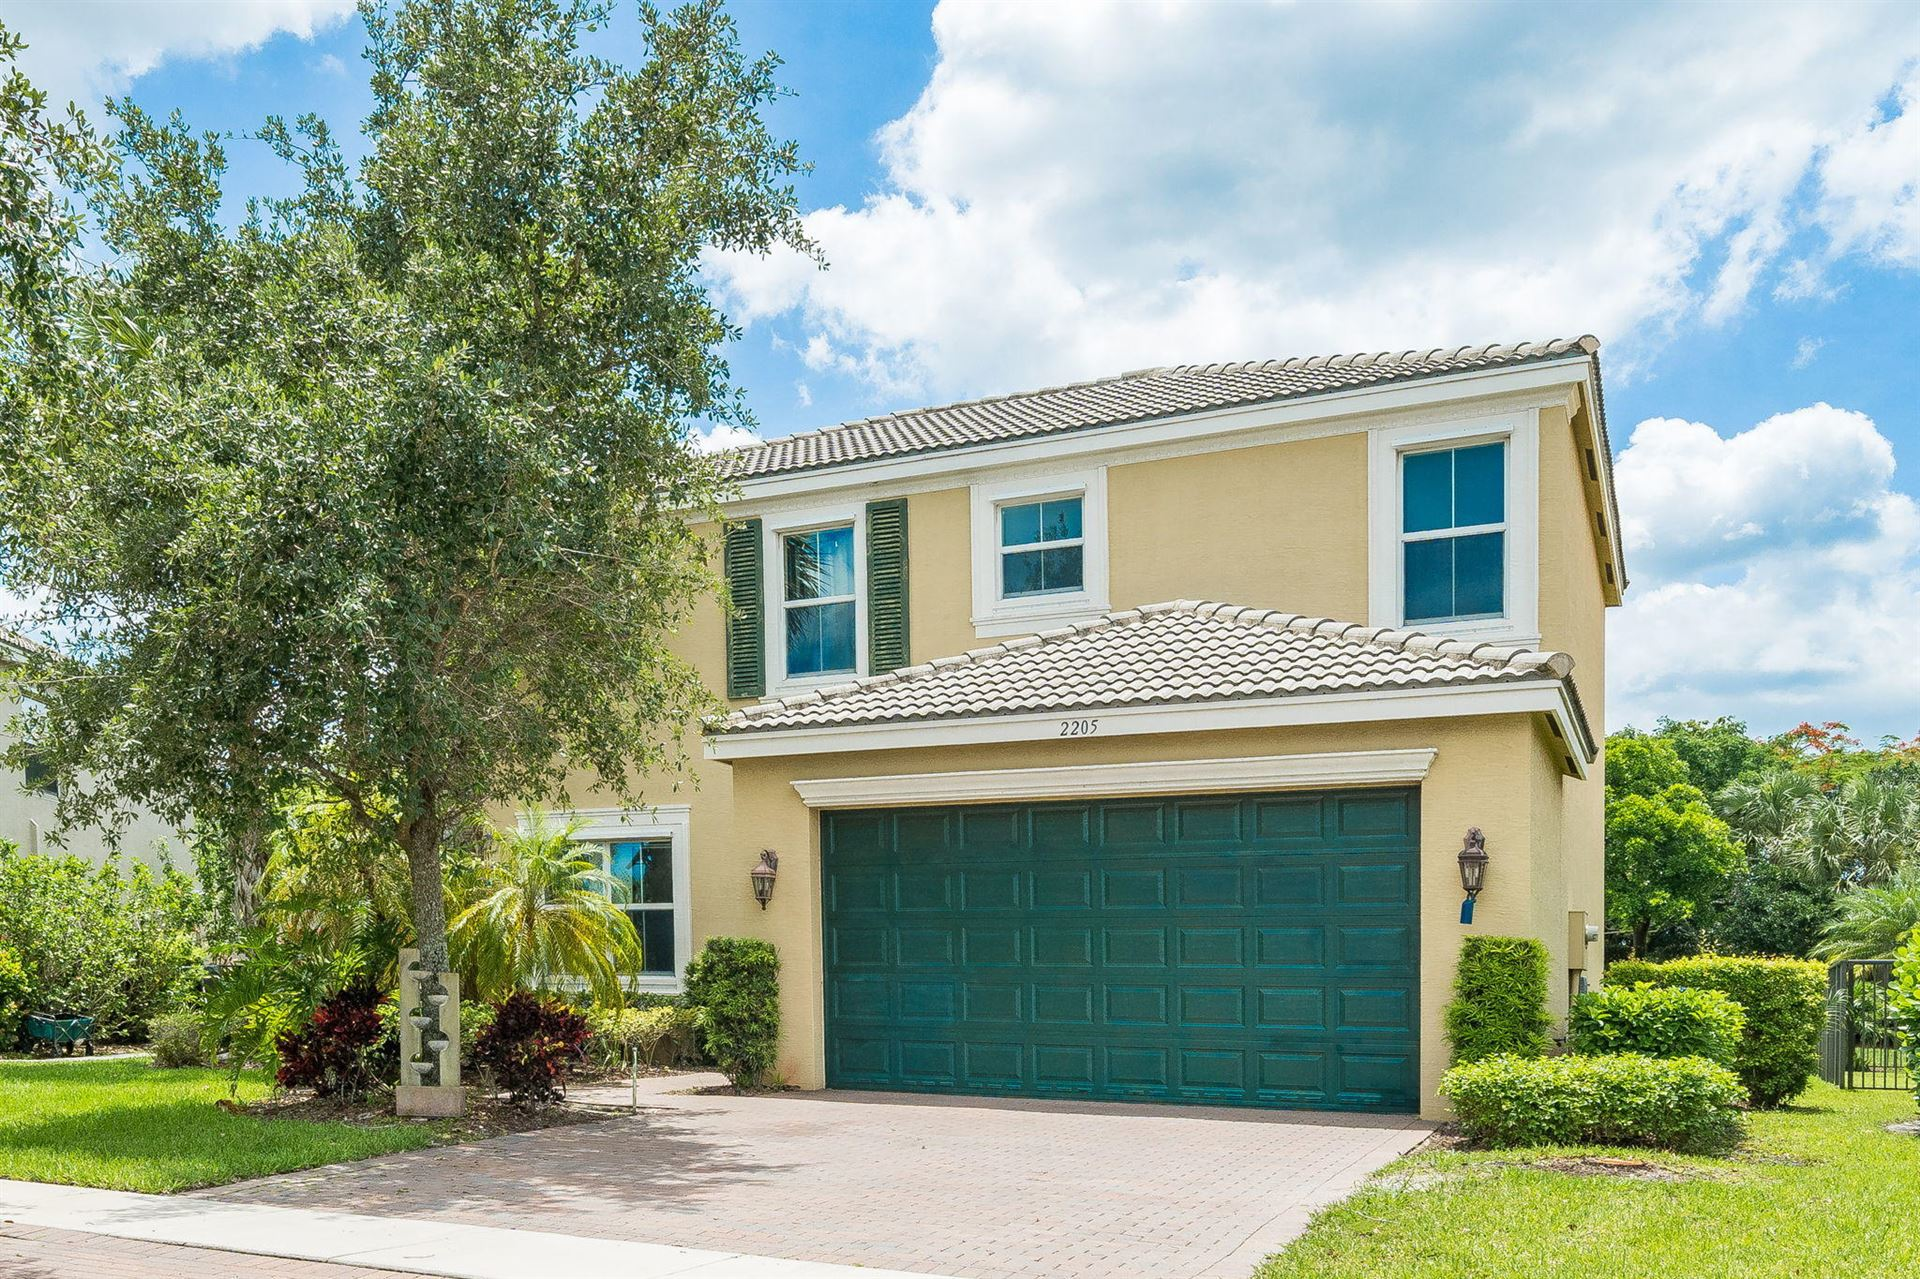 2205 Arterra Court, Royal Palm Beach, FL 33411 - #: RX-10598114